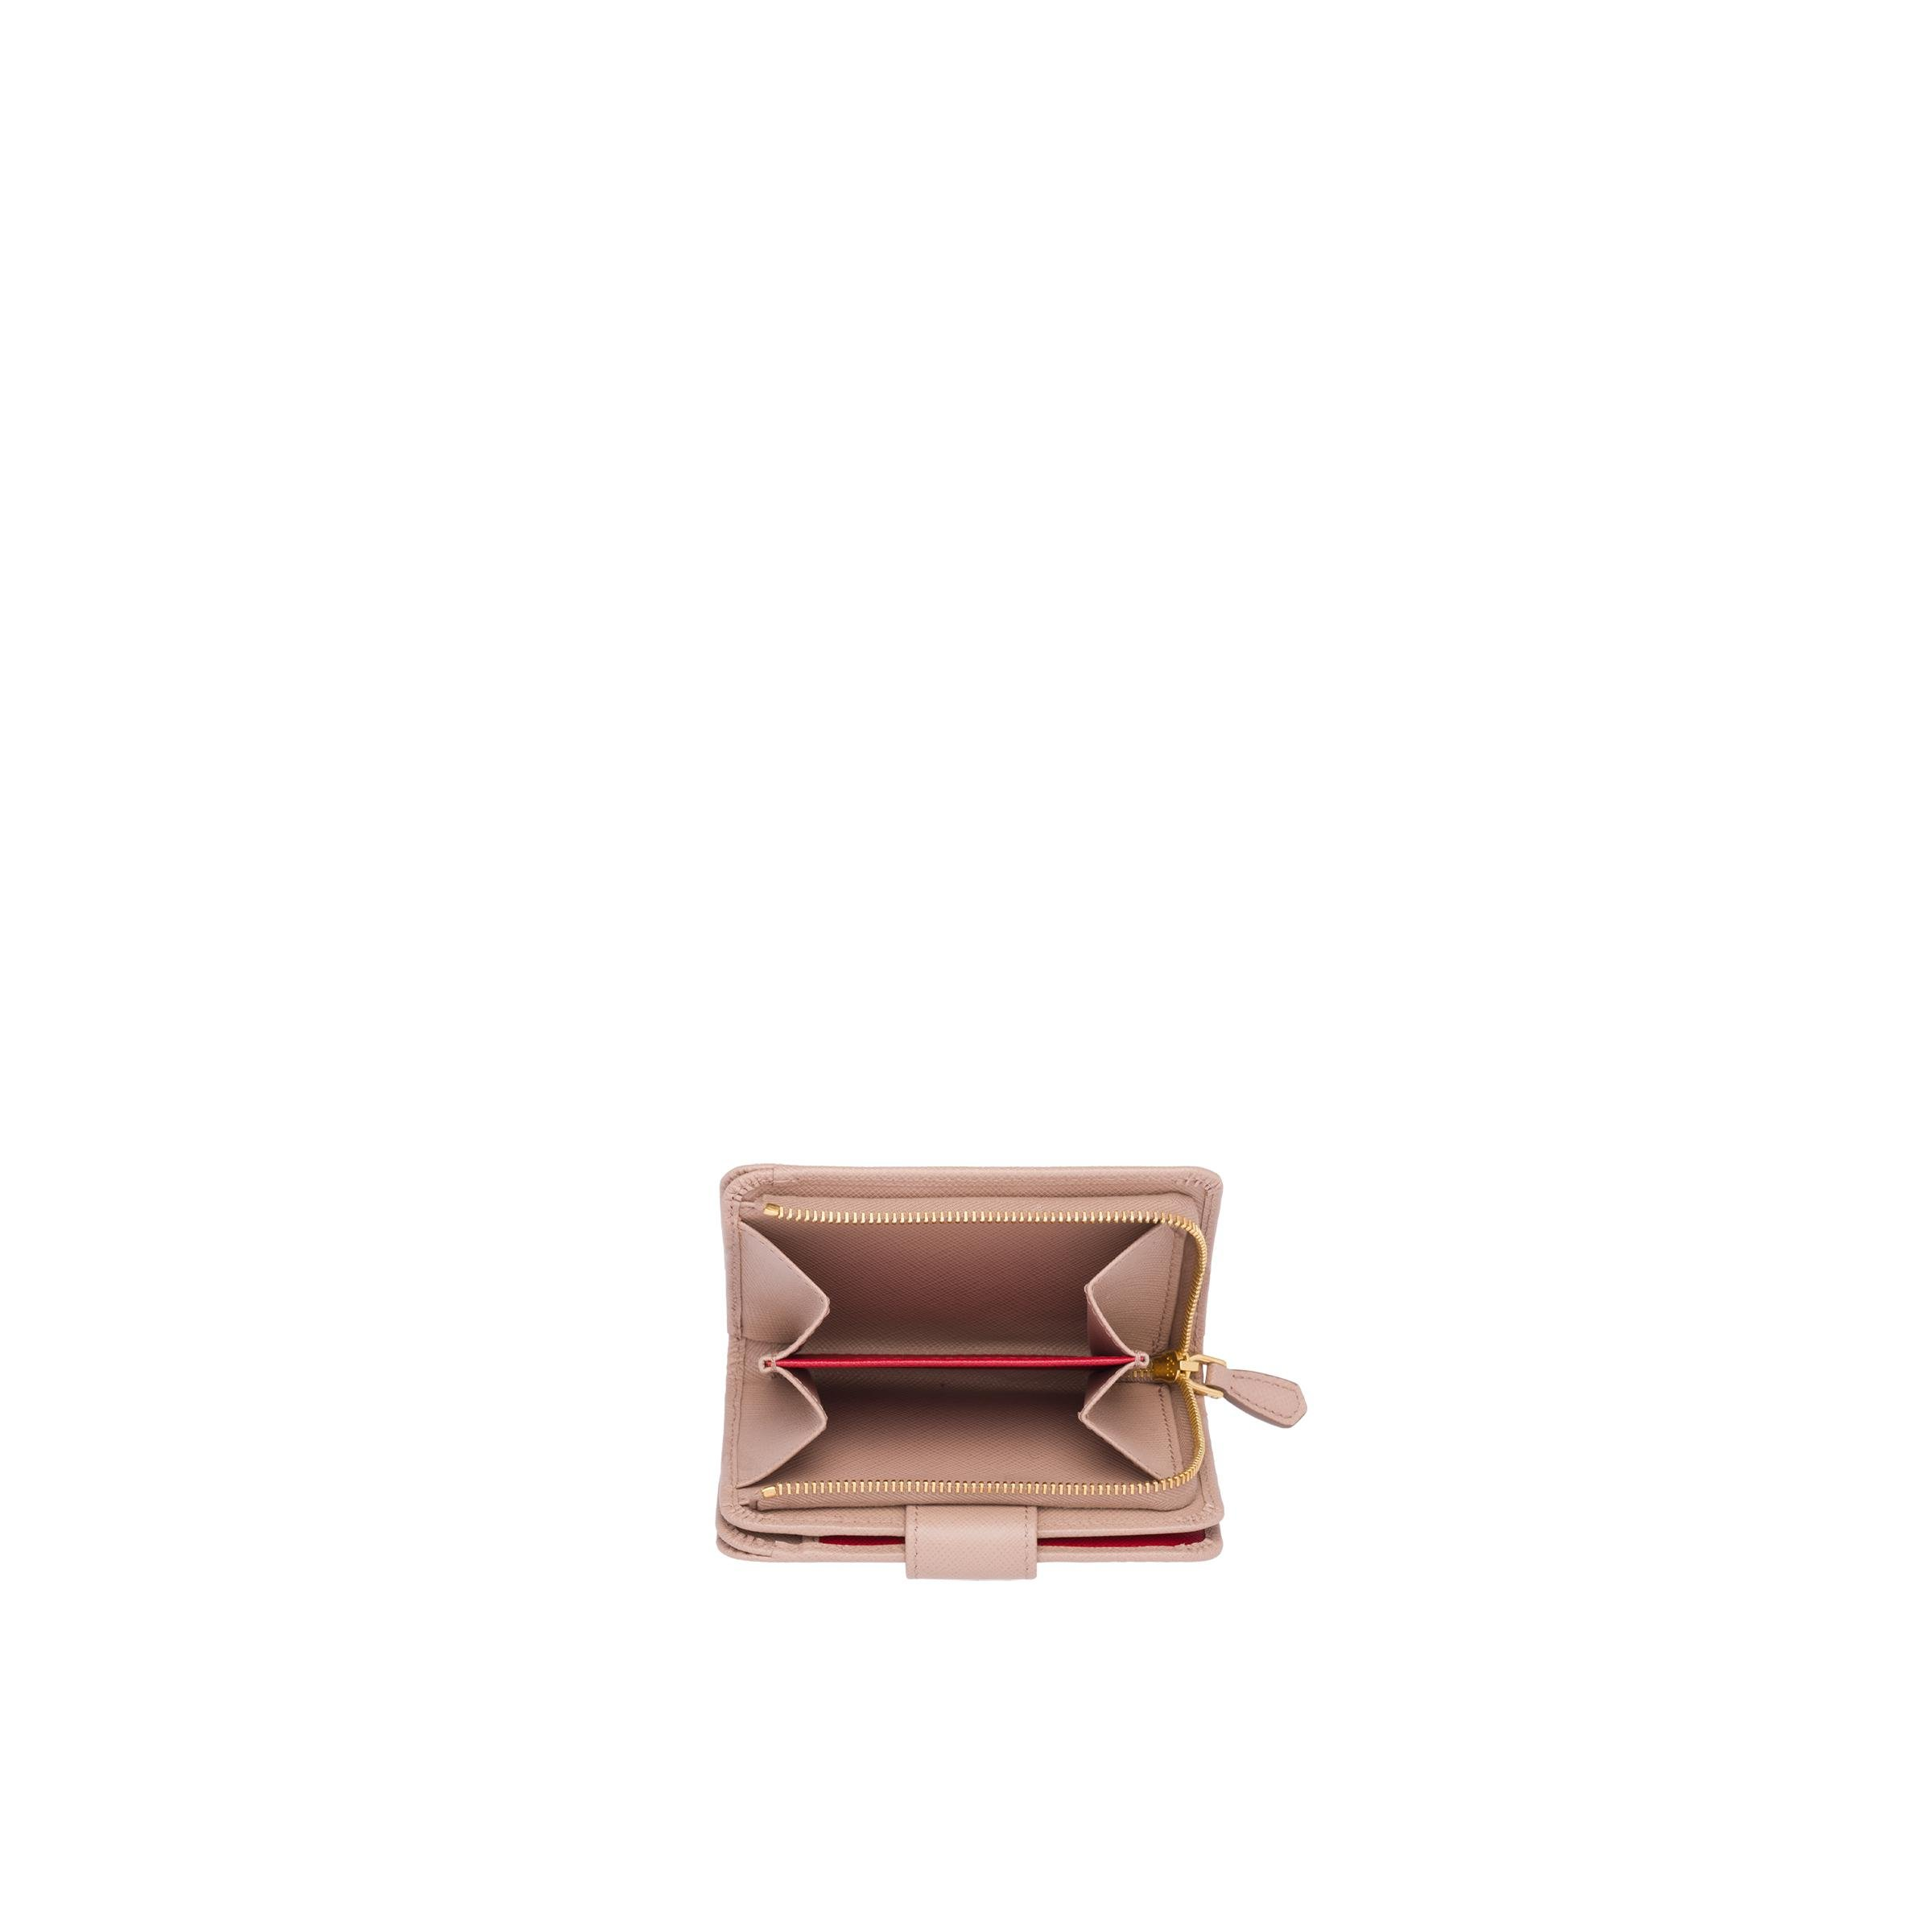 Small Saffiano Leather Wallet Women Powder Pink/fiery Red 1